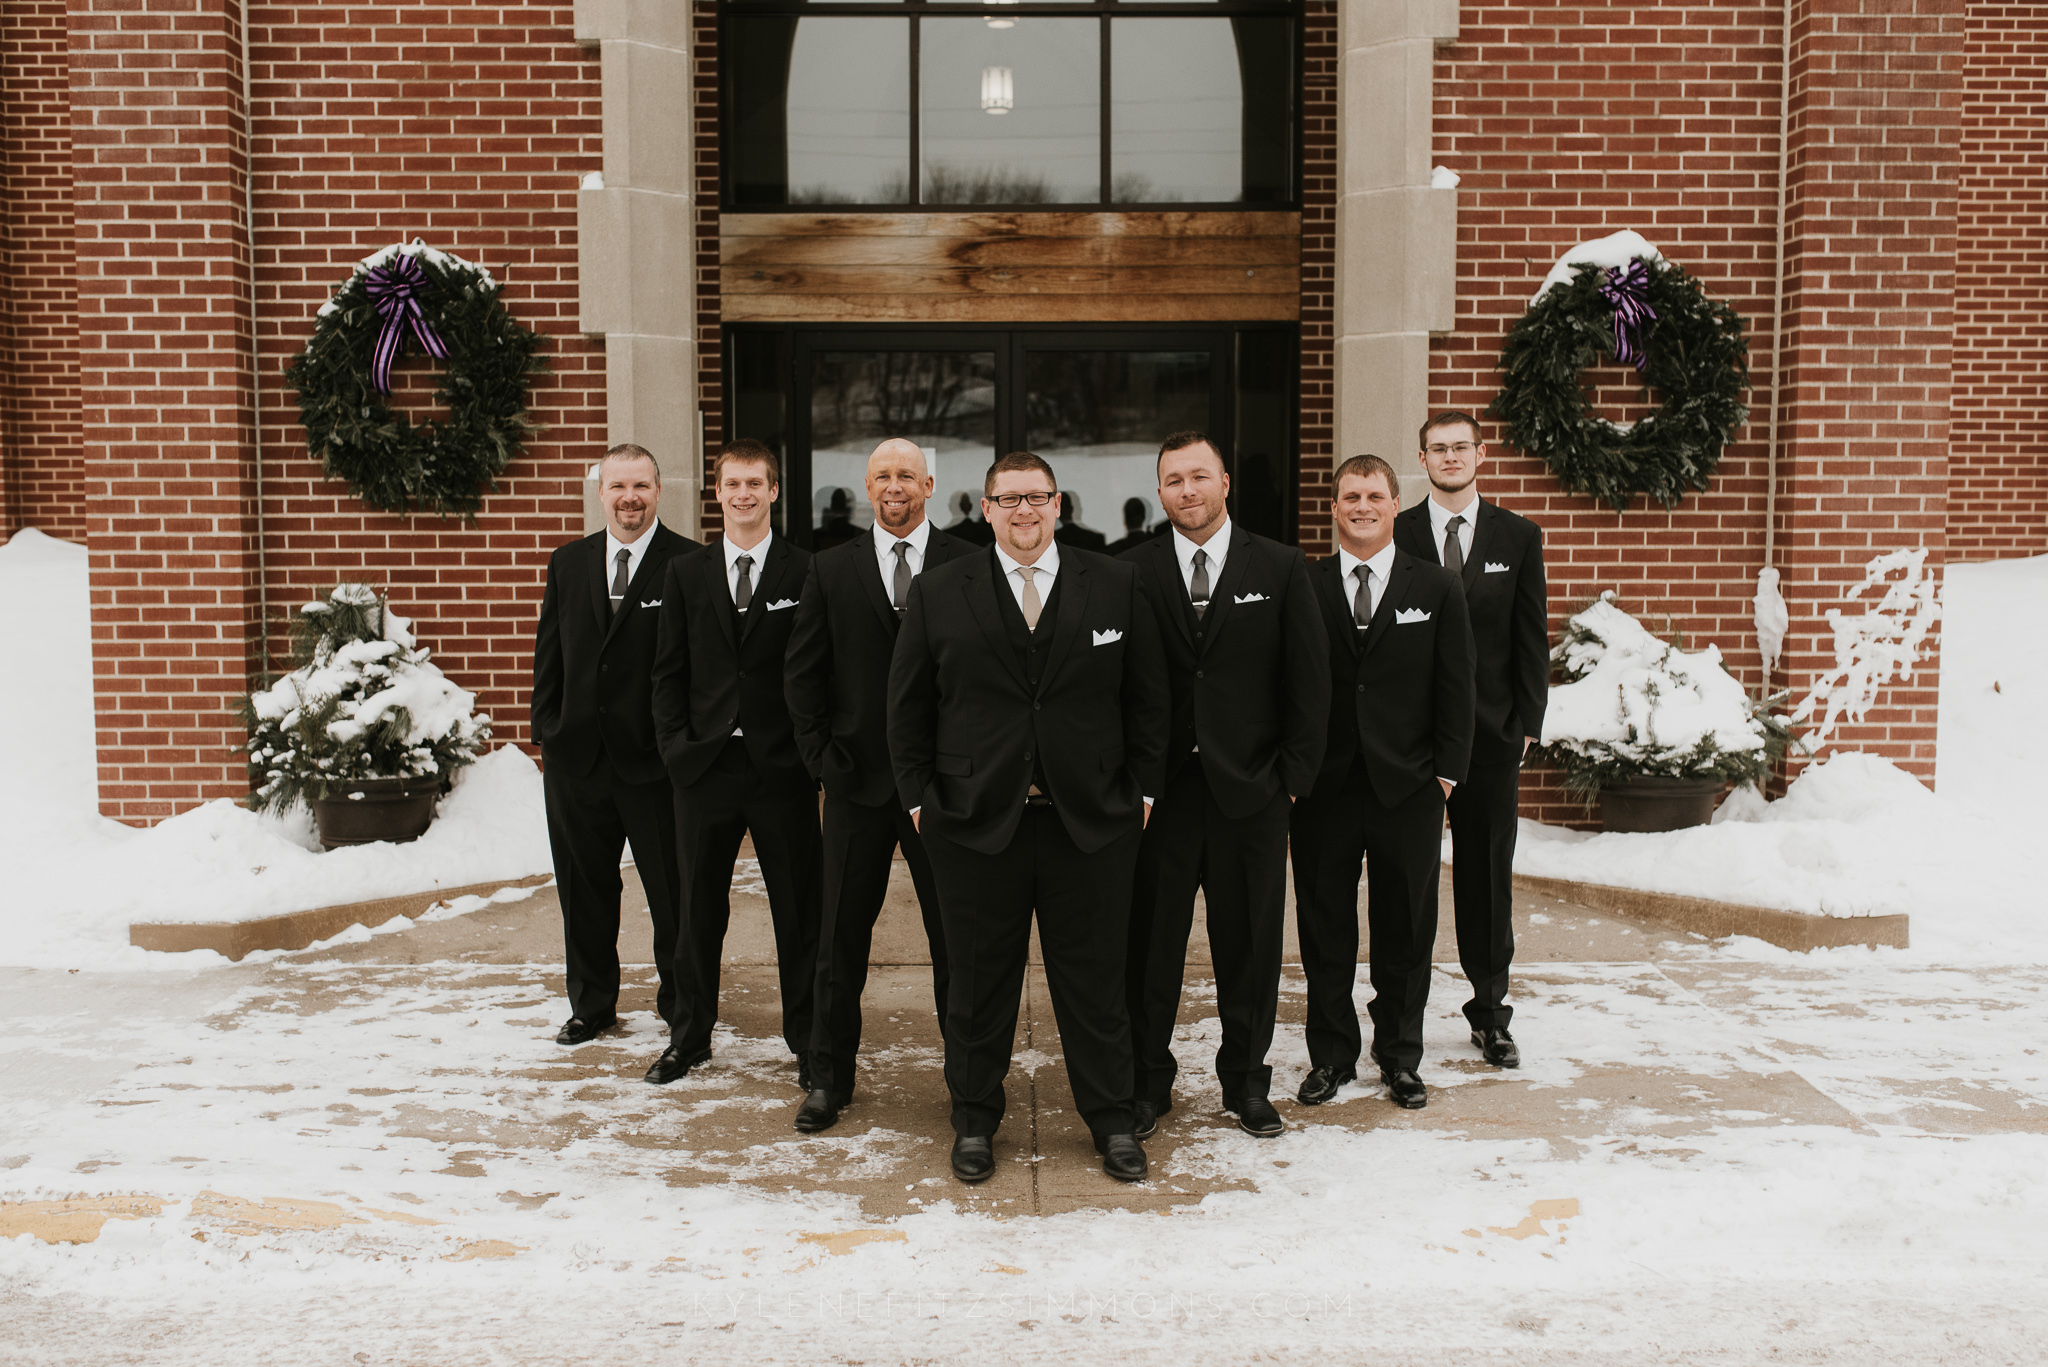 giannonatti-minnesota-winter-wedding-54.jpg